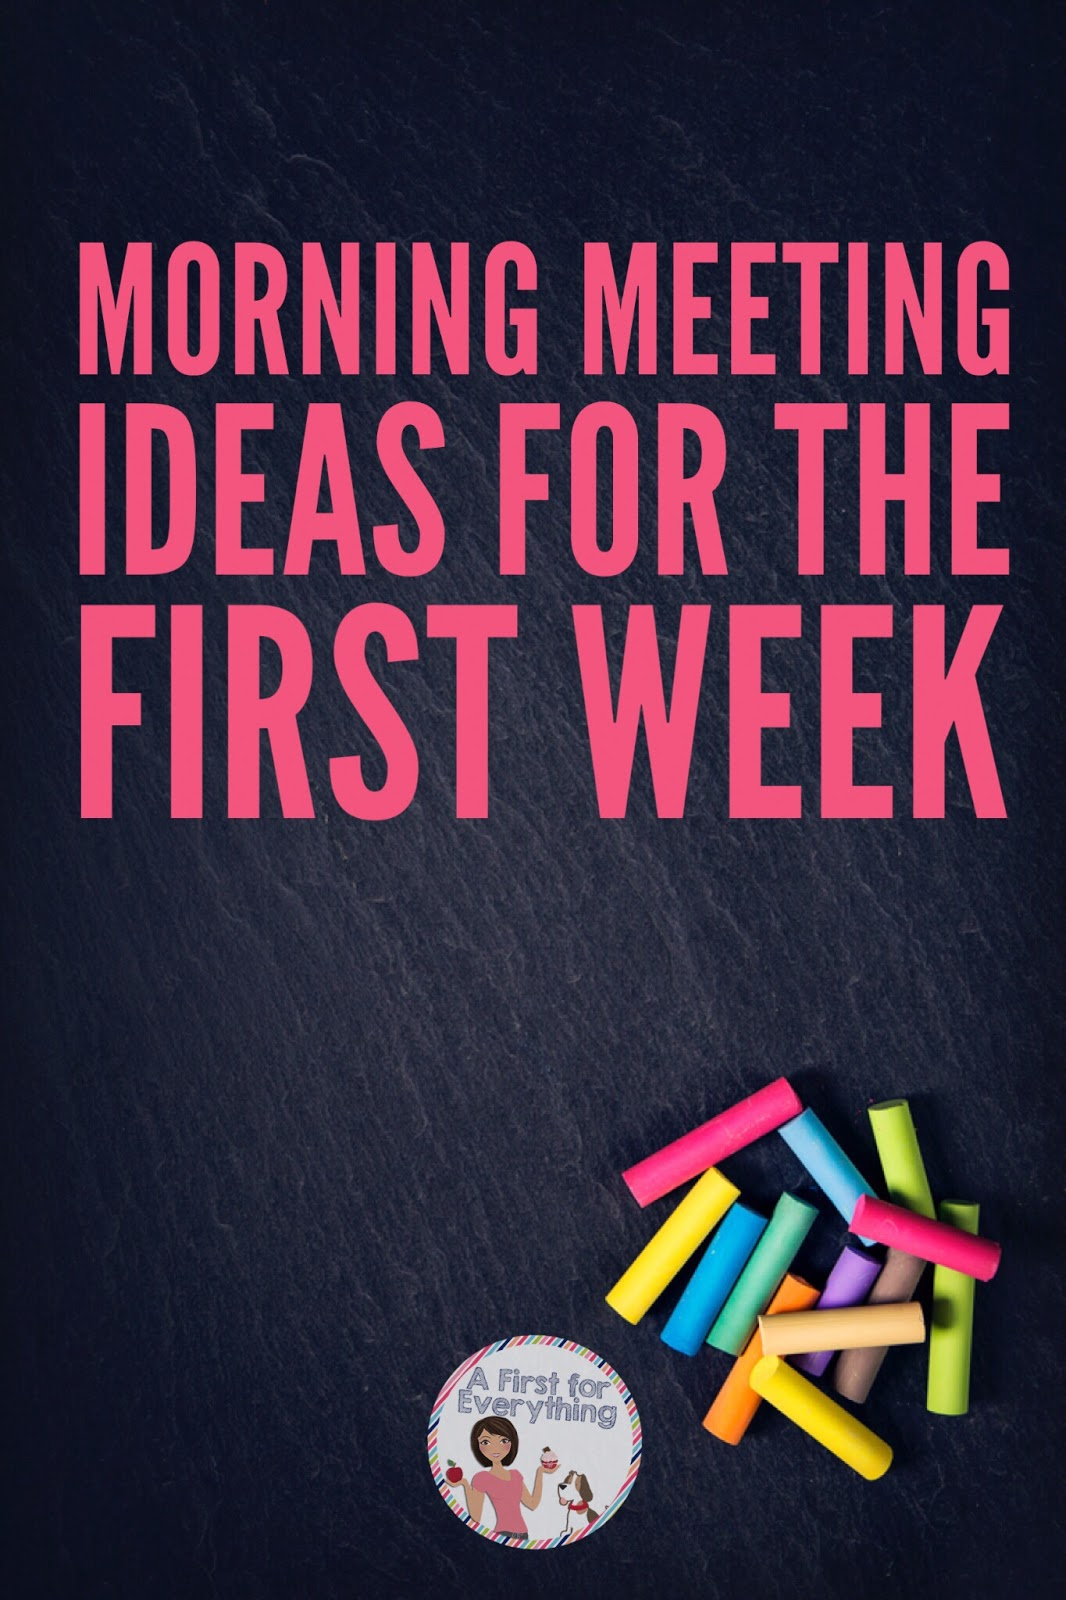 A first for everything august 2017 over 20 ideas for morning meeting for kindergarten and first grade the first week of school m4hsunfo Image collections